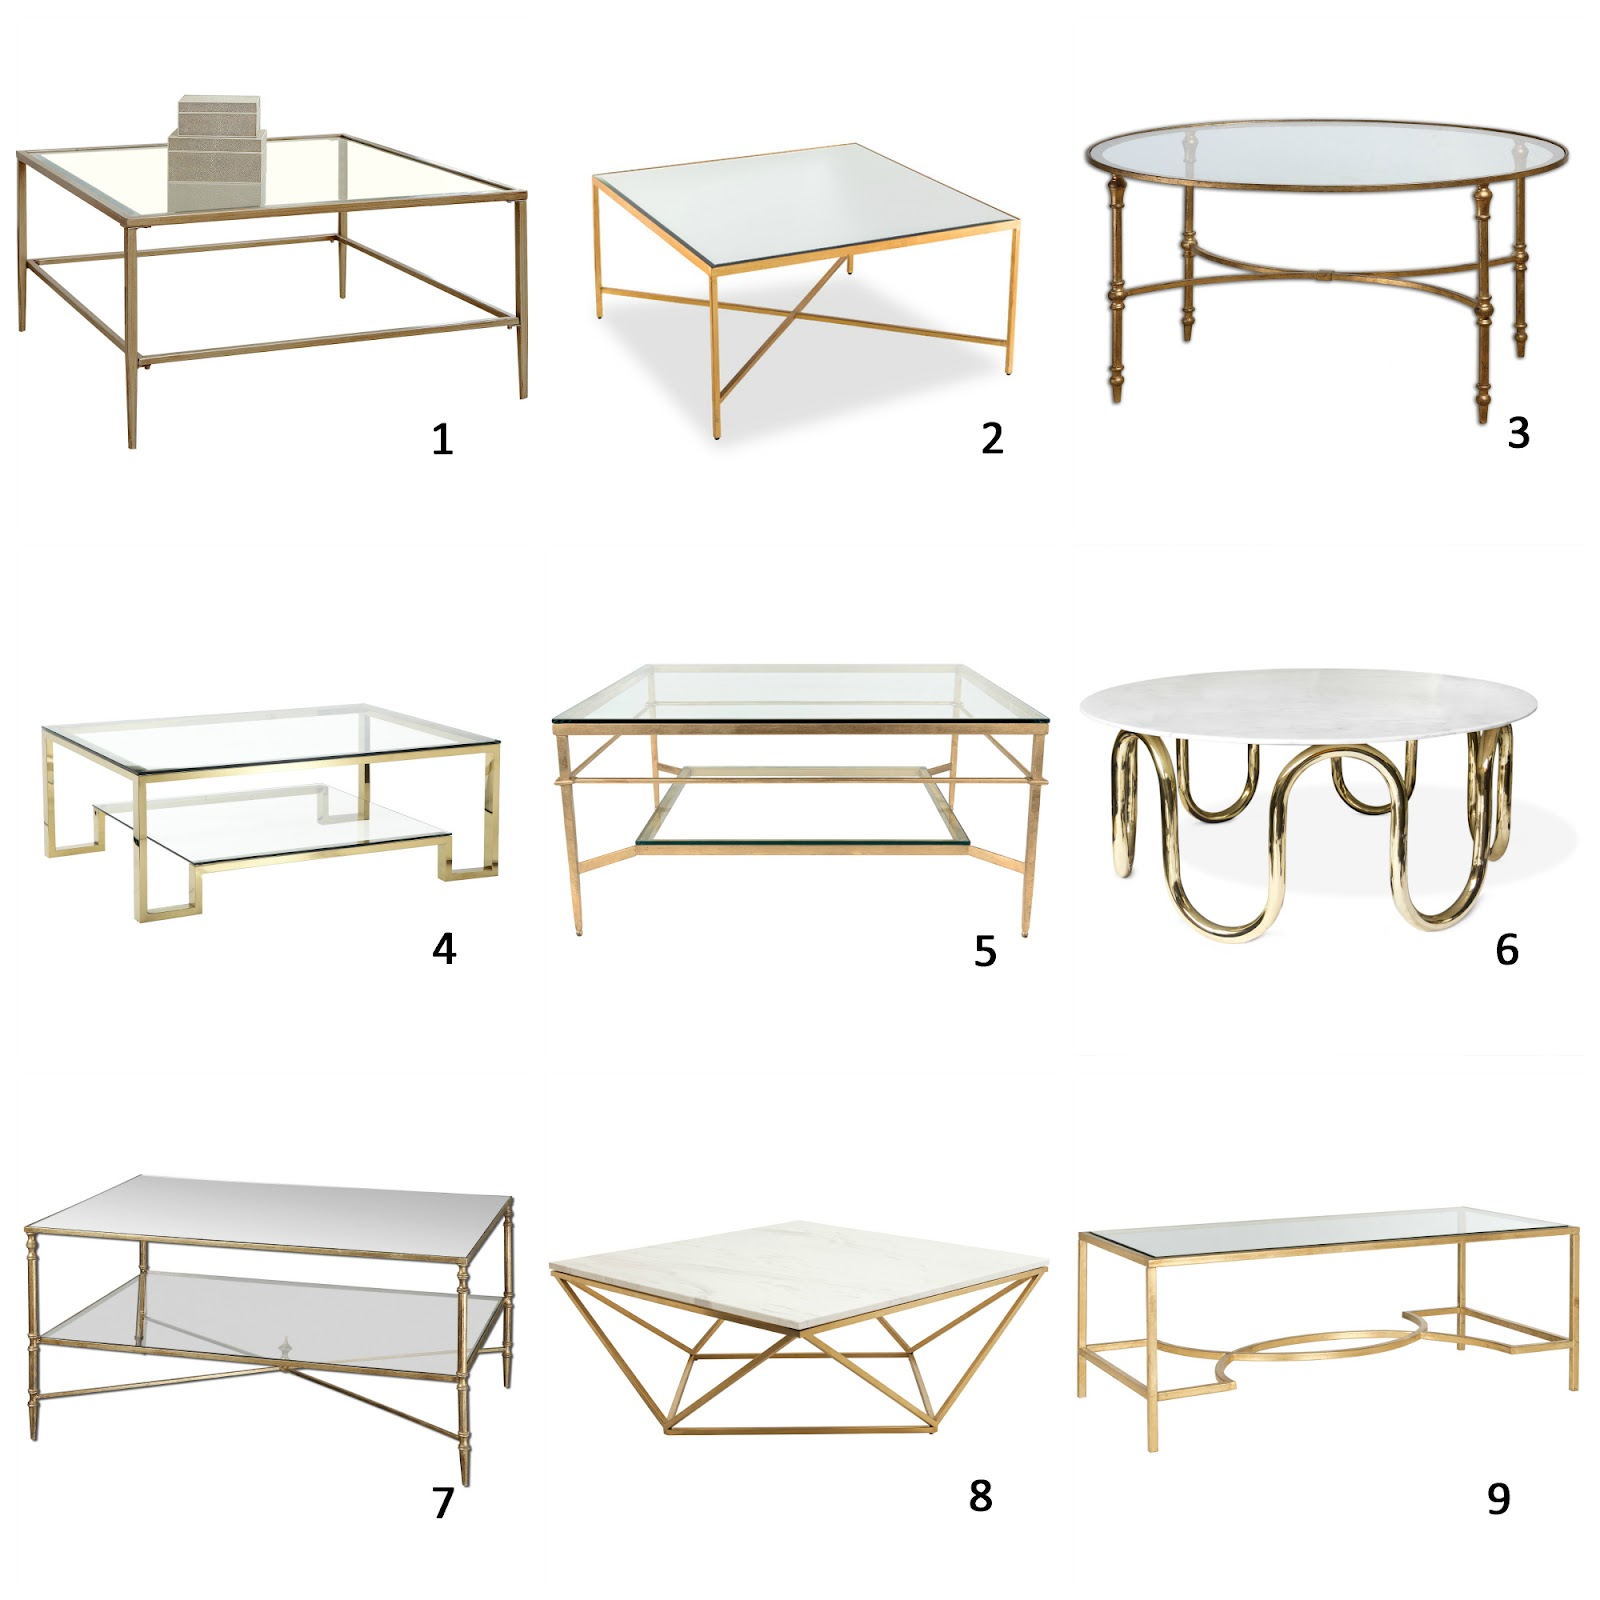 AM Dolce Vita A Roundup of Brass and Glass Coffee Tables